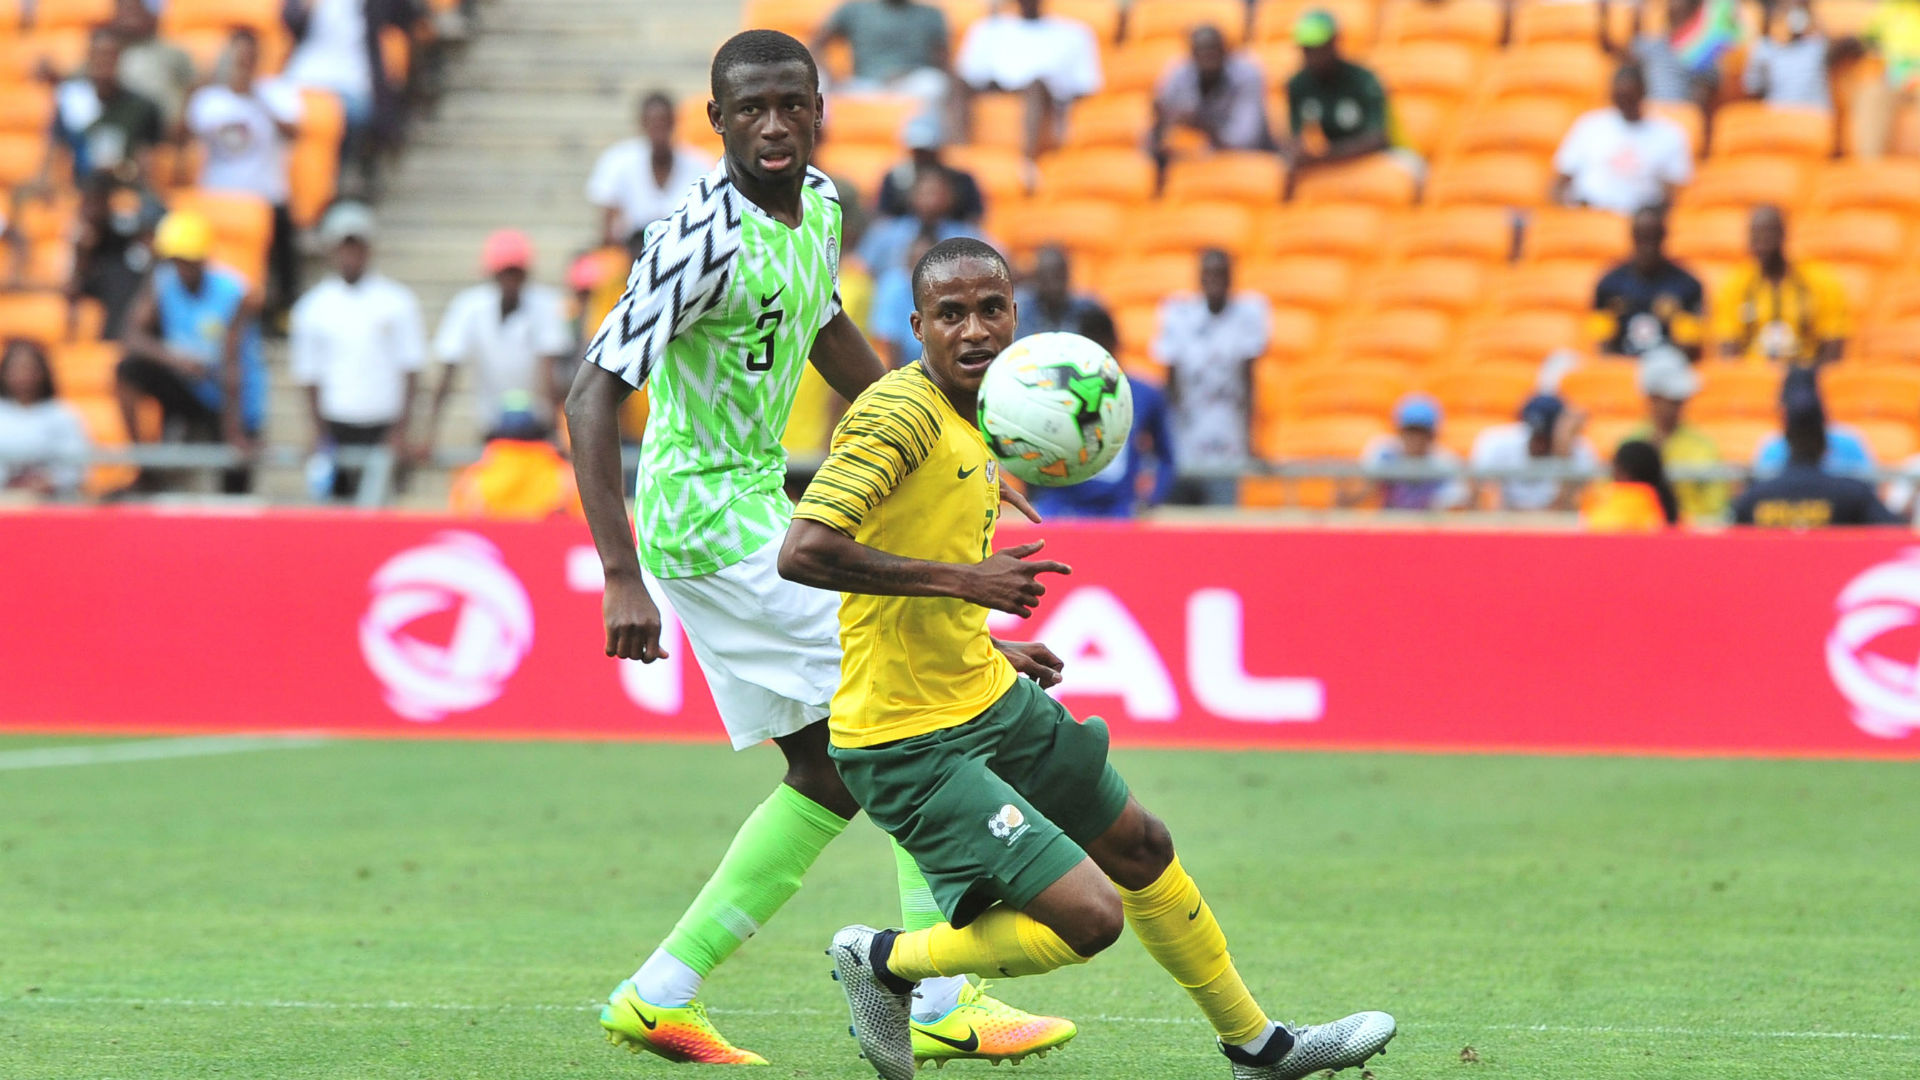 AFCON Qualifier: We must win S/Africa - Musa